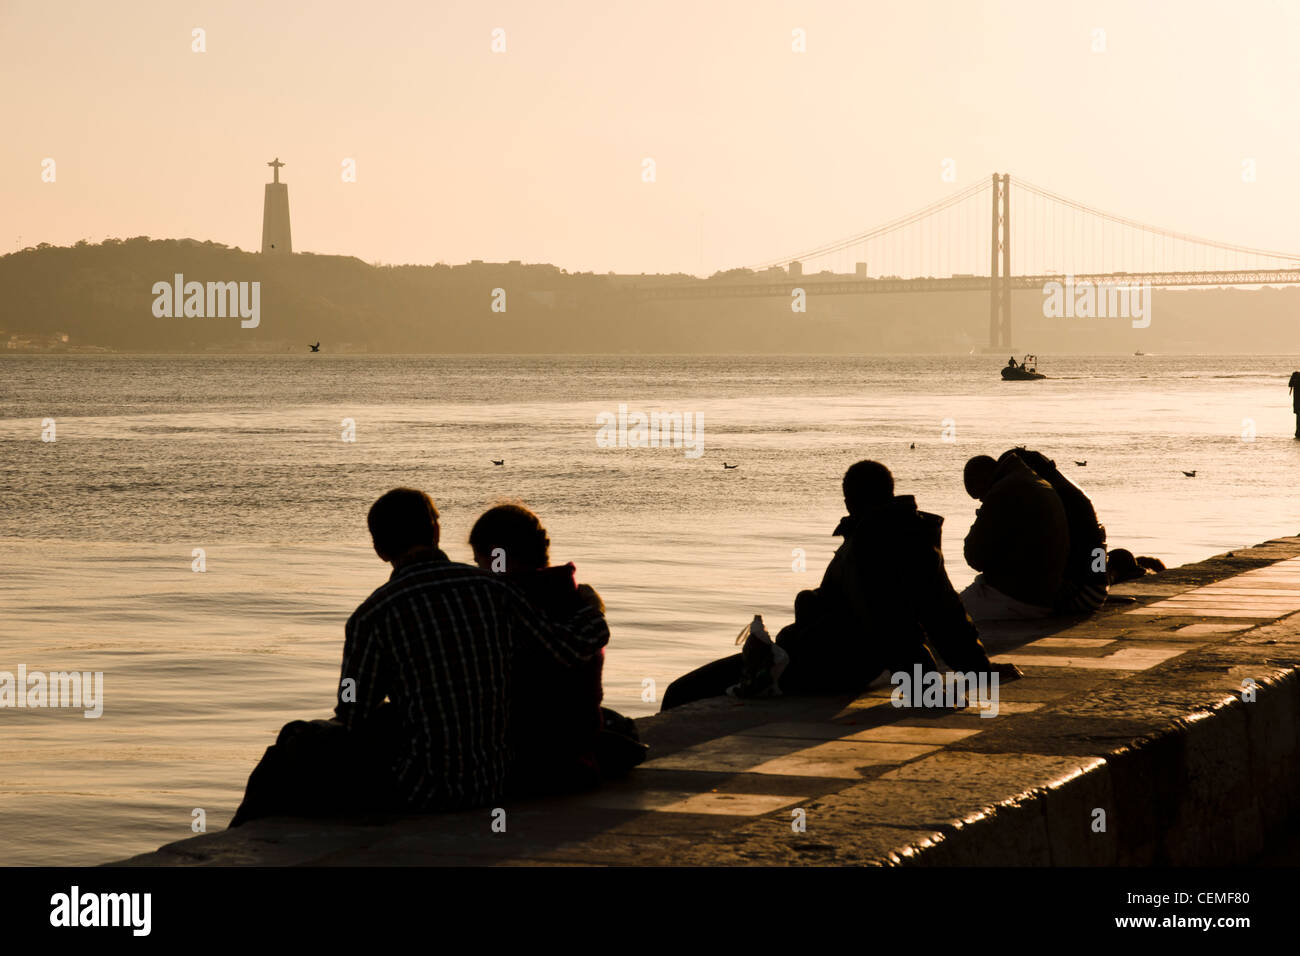 People at the Tagus riverbank at sunset. Lisbon, Portugal. - Stock Image